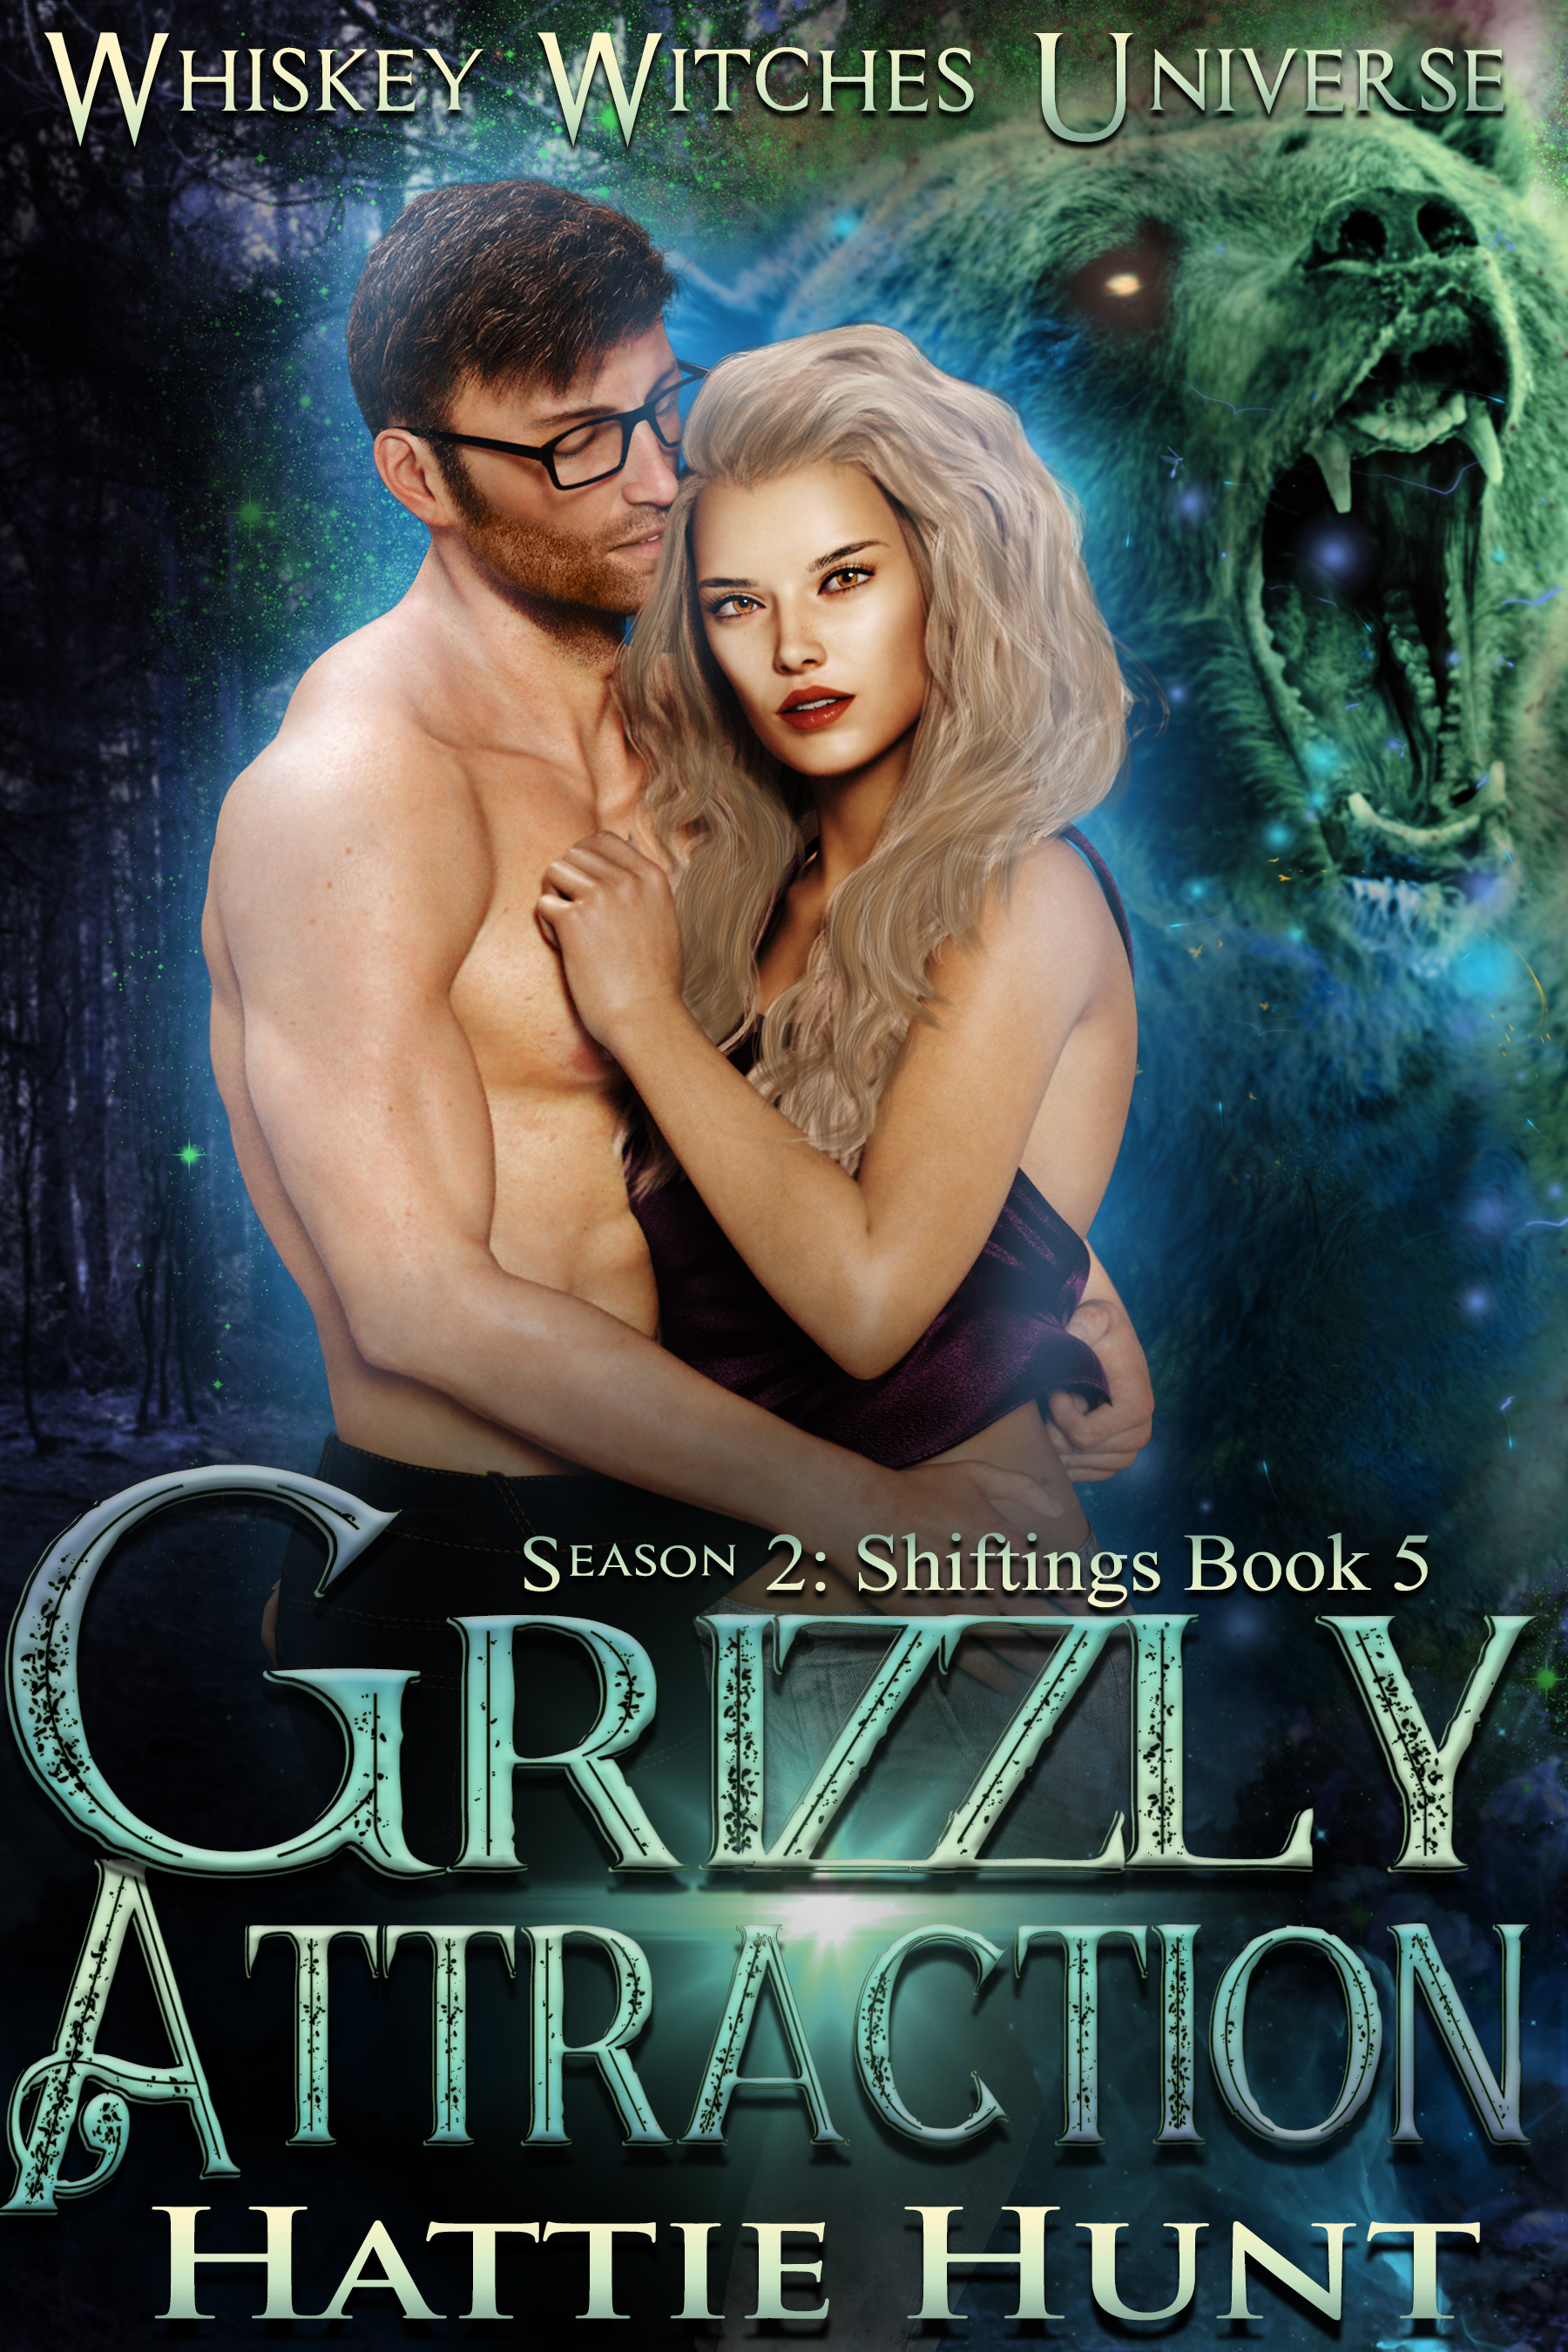 5.2019 Grizzly Attraction ebook.jpg